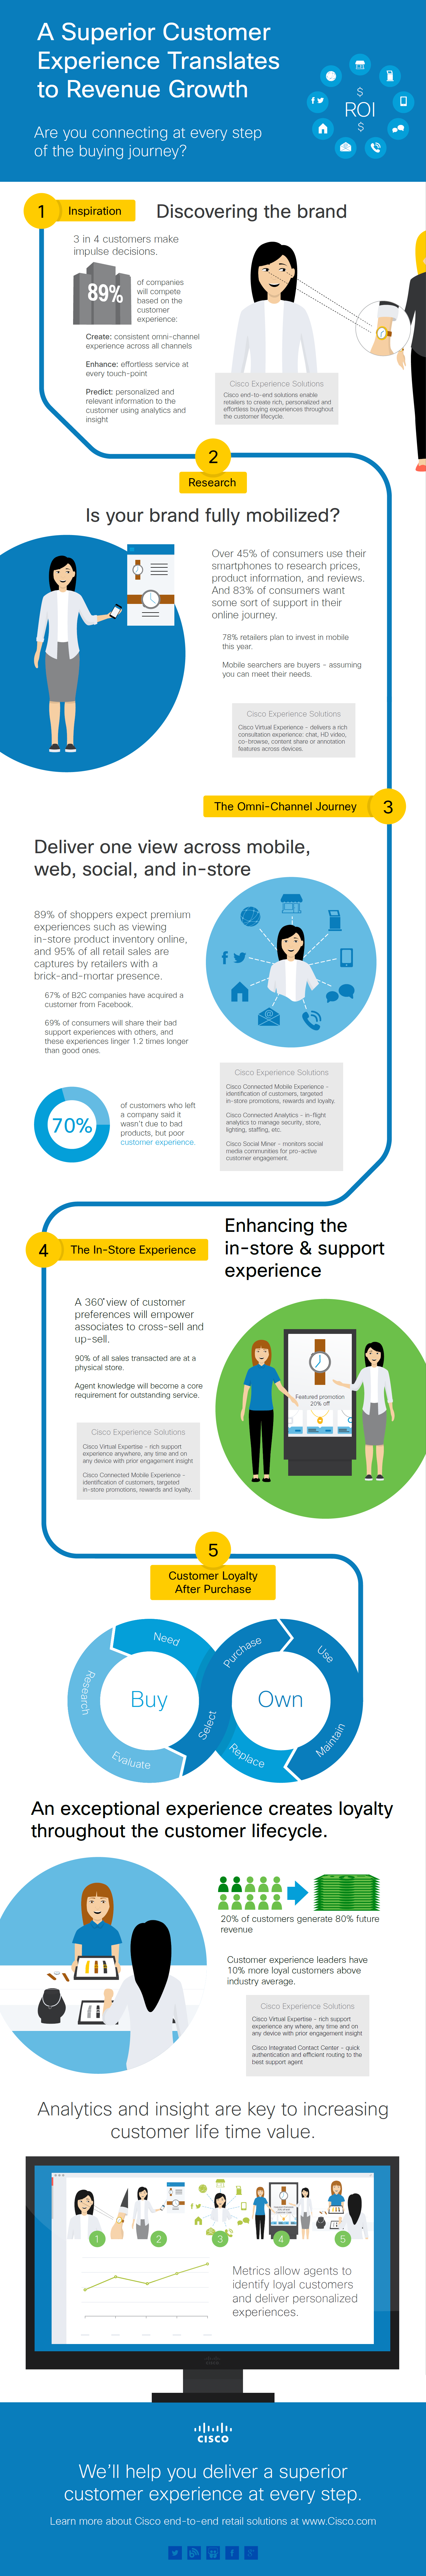 Cisco-customer-experience-infographic